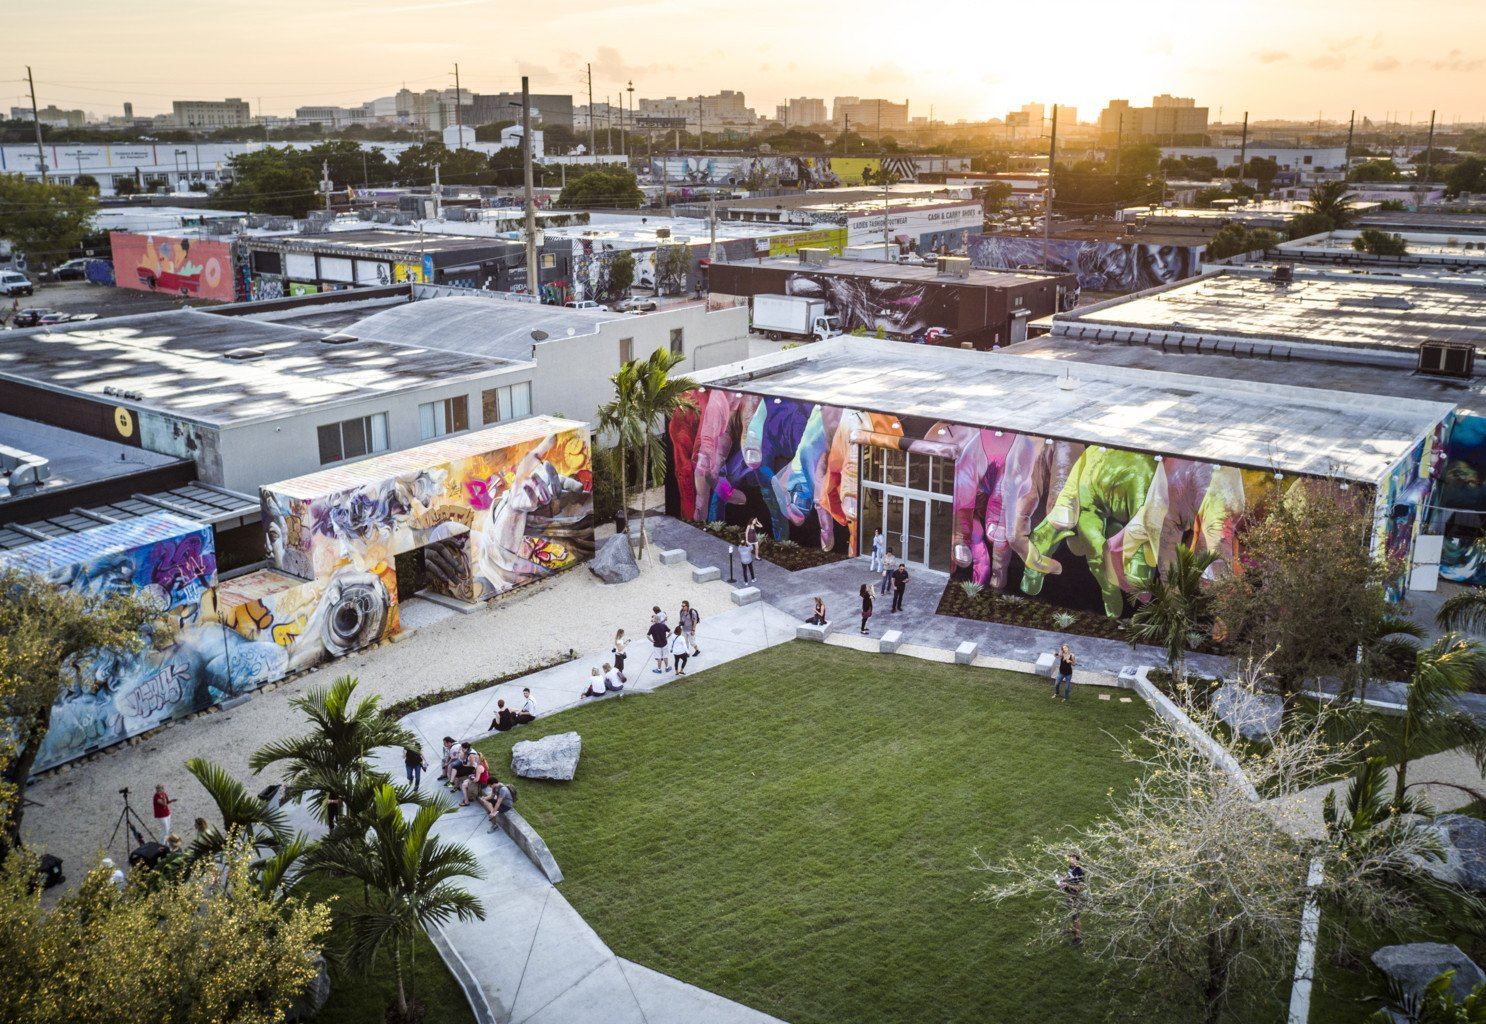 The Wynwood Walls Garden area and the Garden Shop building.